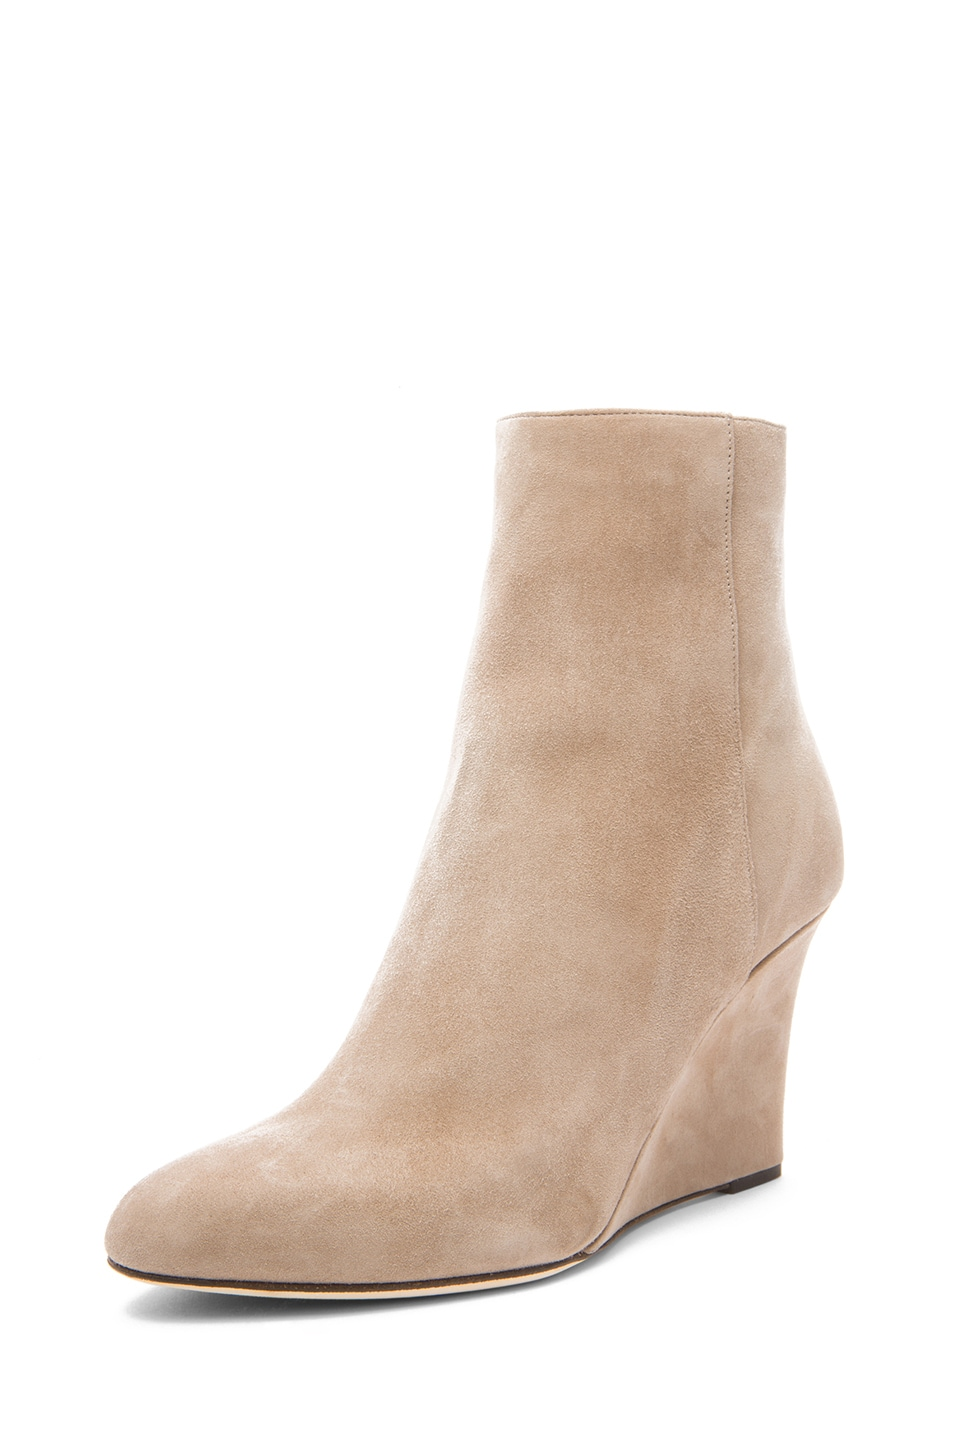 Image 2 of Jimmy Choo Mayor Suede 85mm Wedge Ankle Boots in Latte